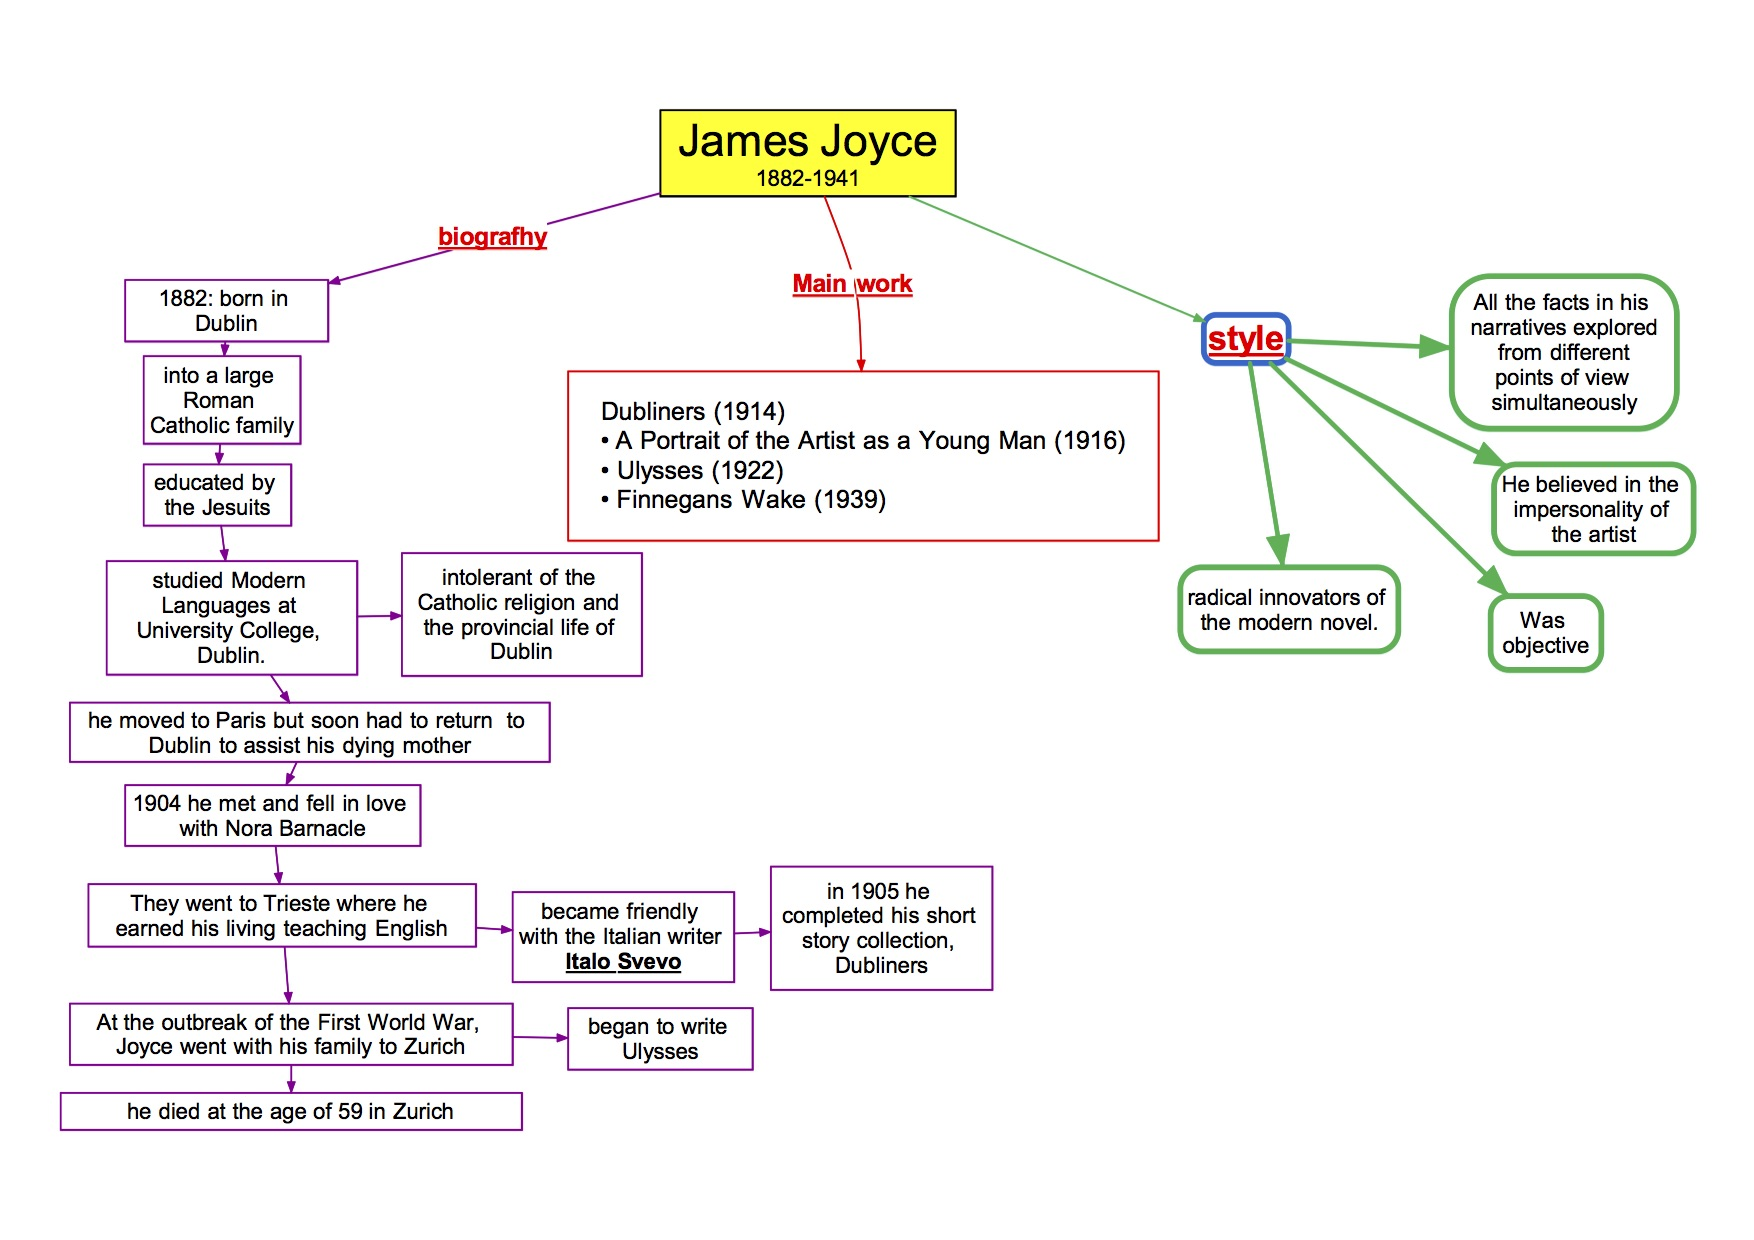 mappa concettuale visual map Inglese  James Joyce bio works